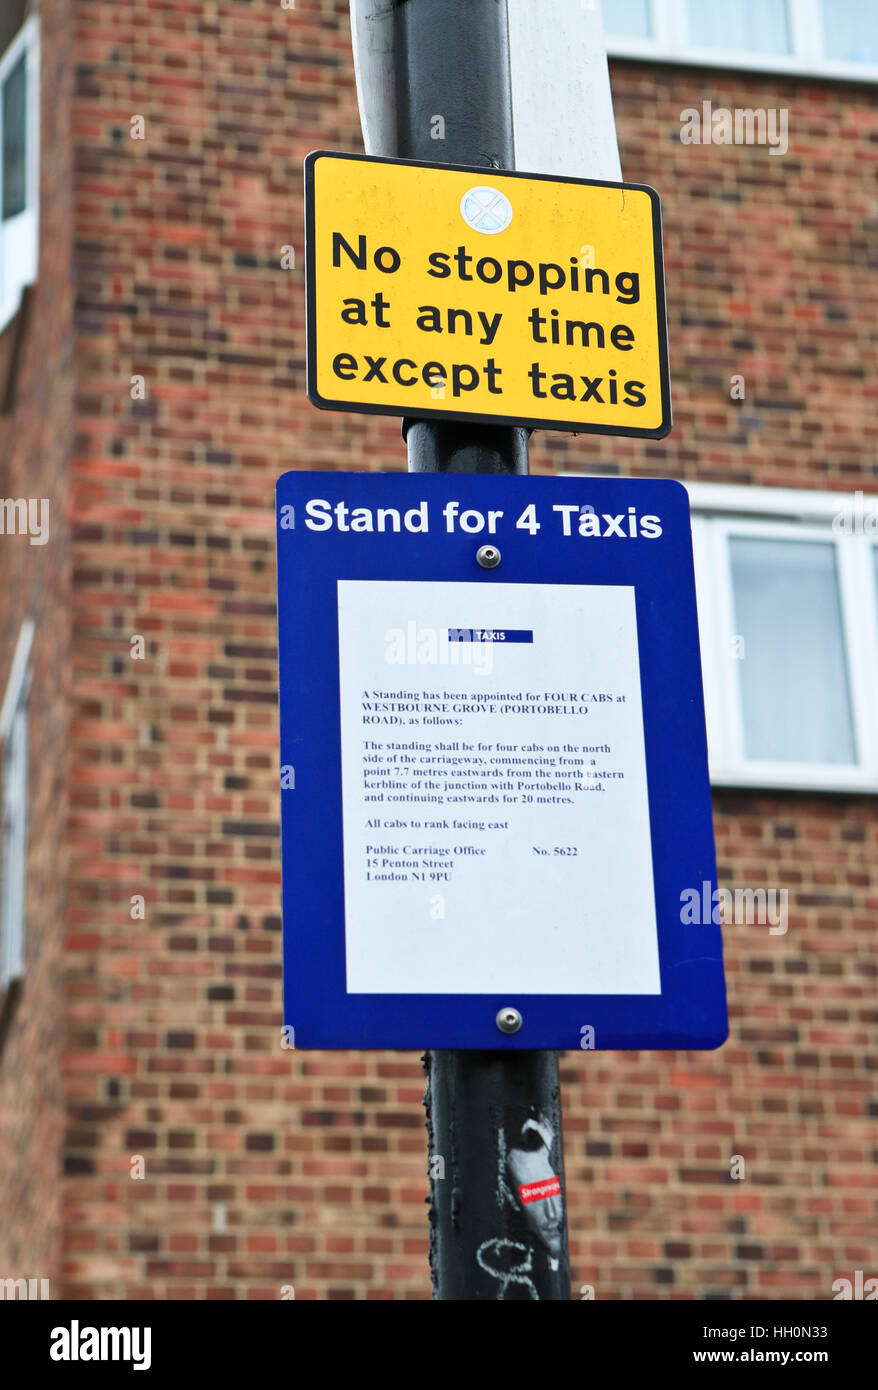 Street sign. Not stopping at any time except taxis. London. UK - Stock Image